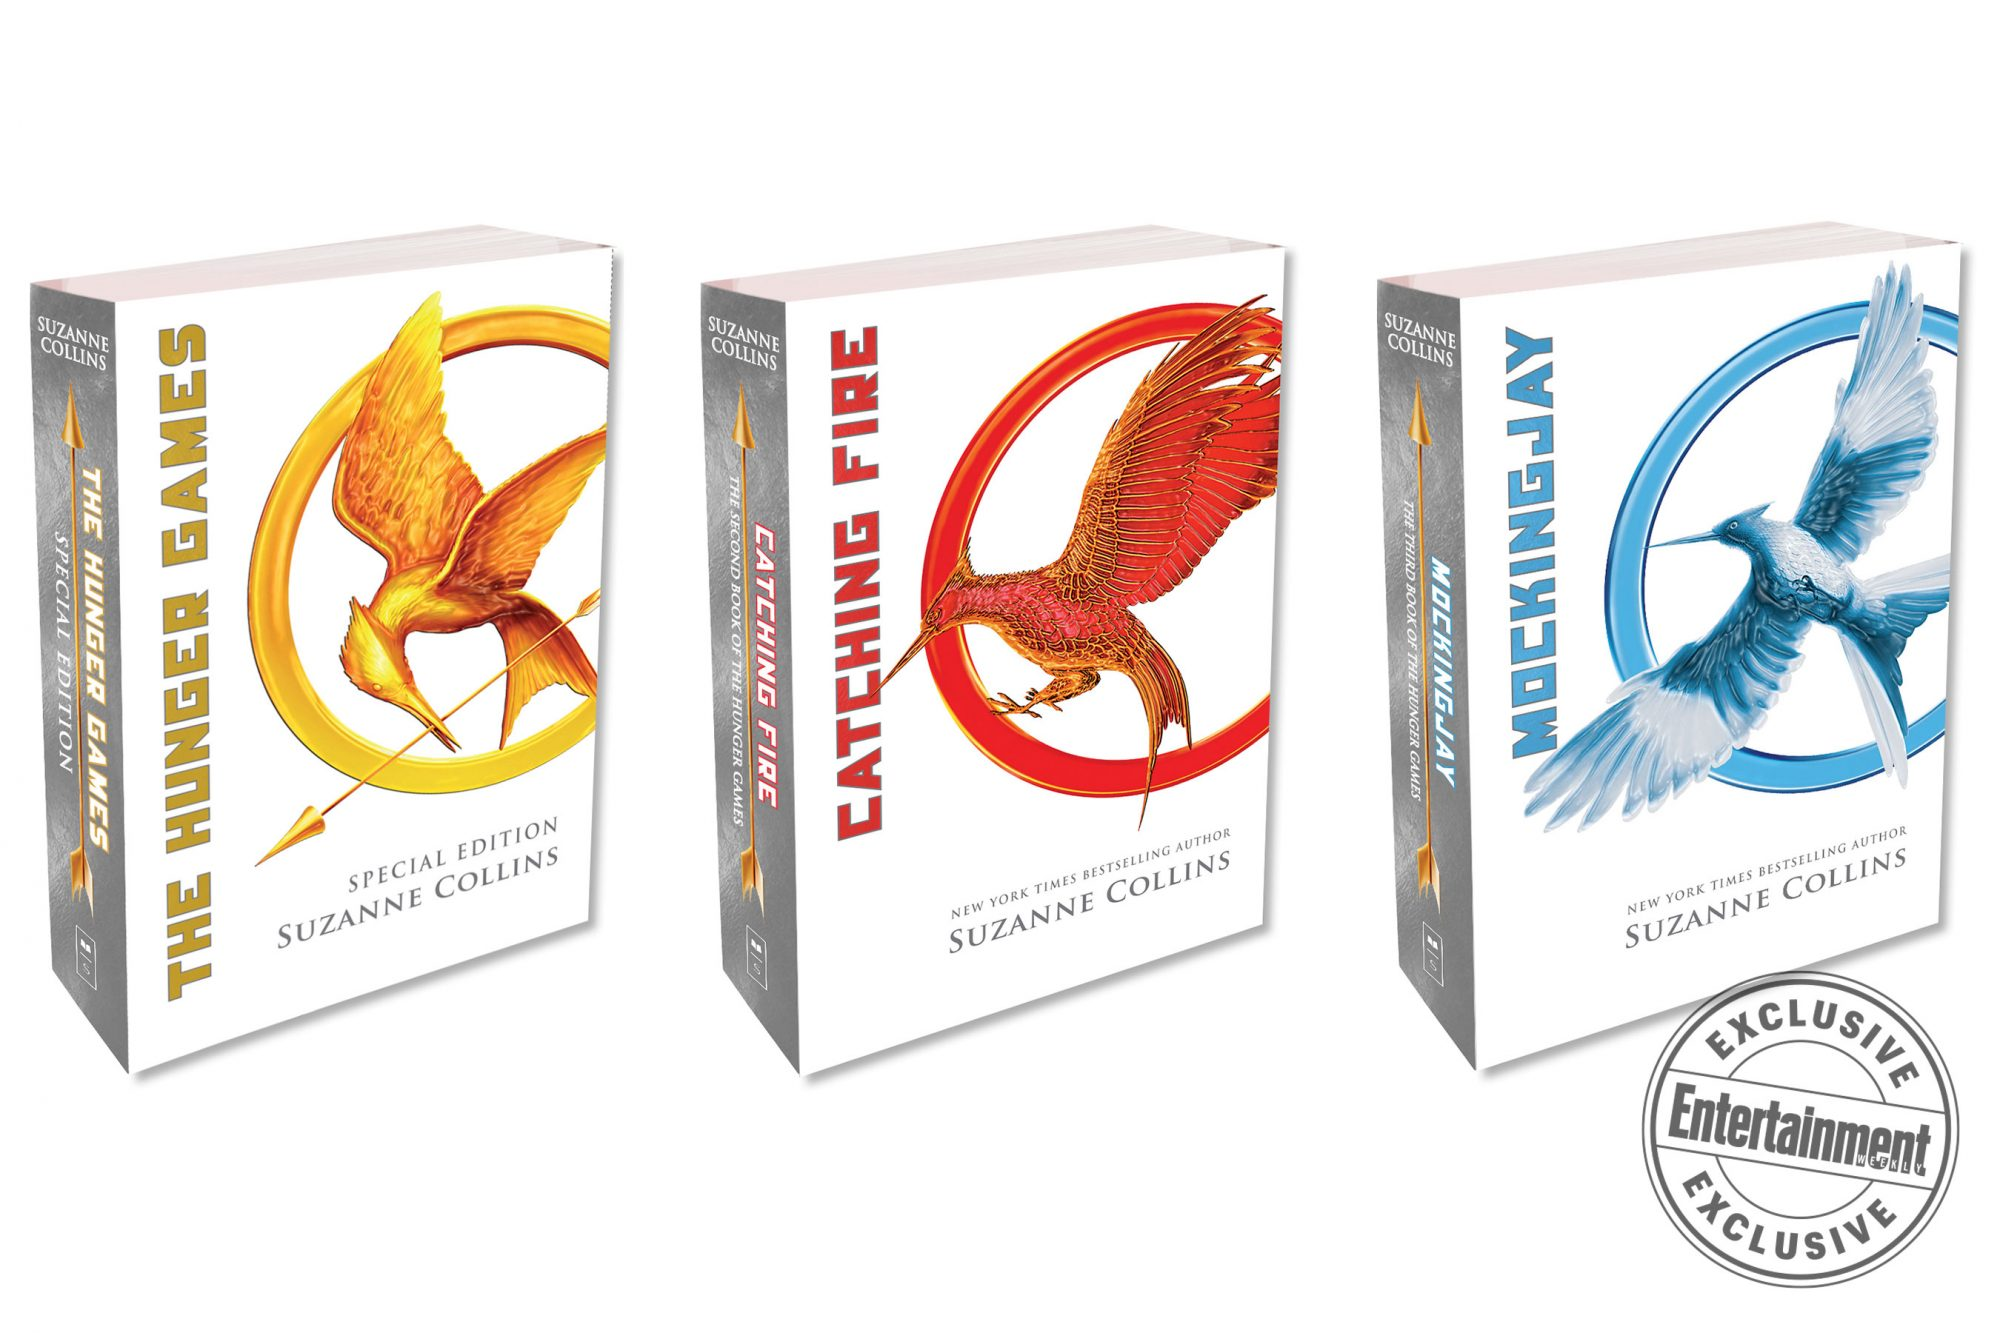 The Hunger Games gets special 10th anniversary covers, new content   EW.com